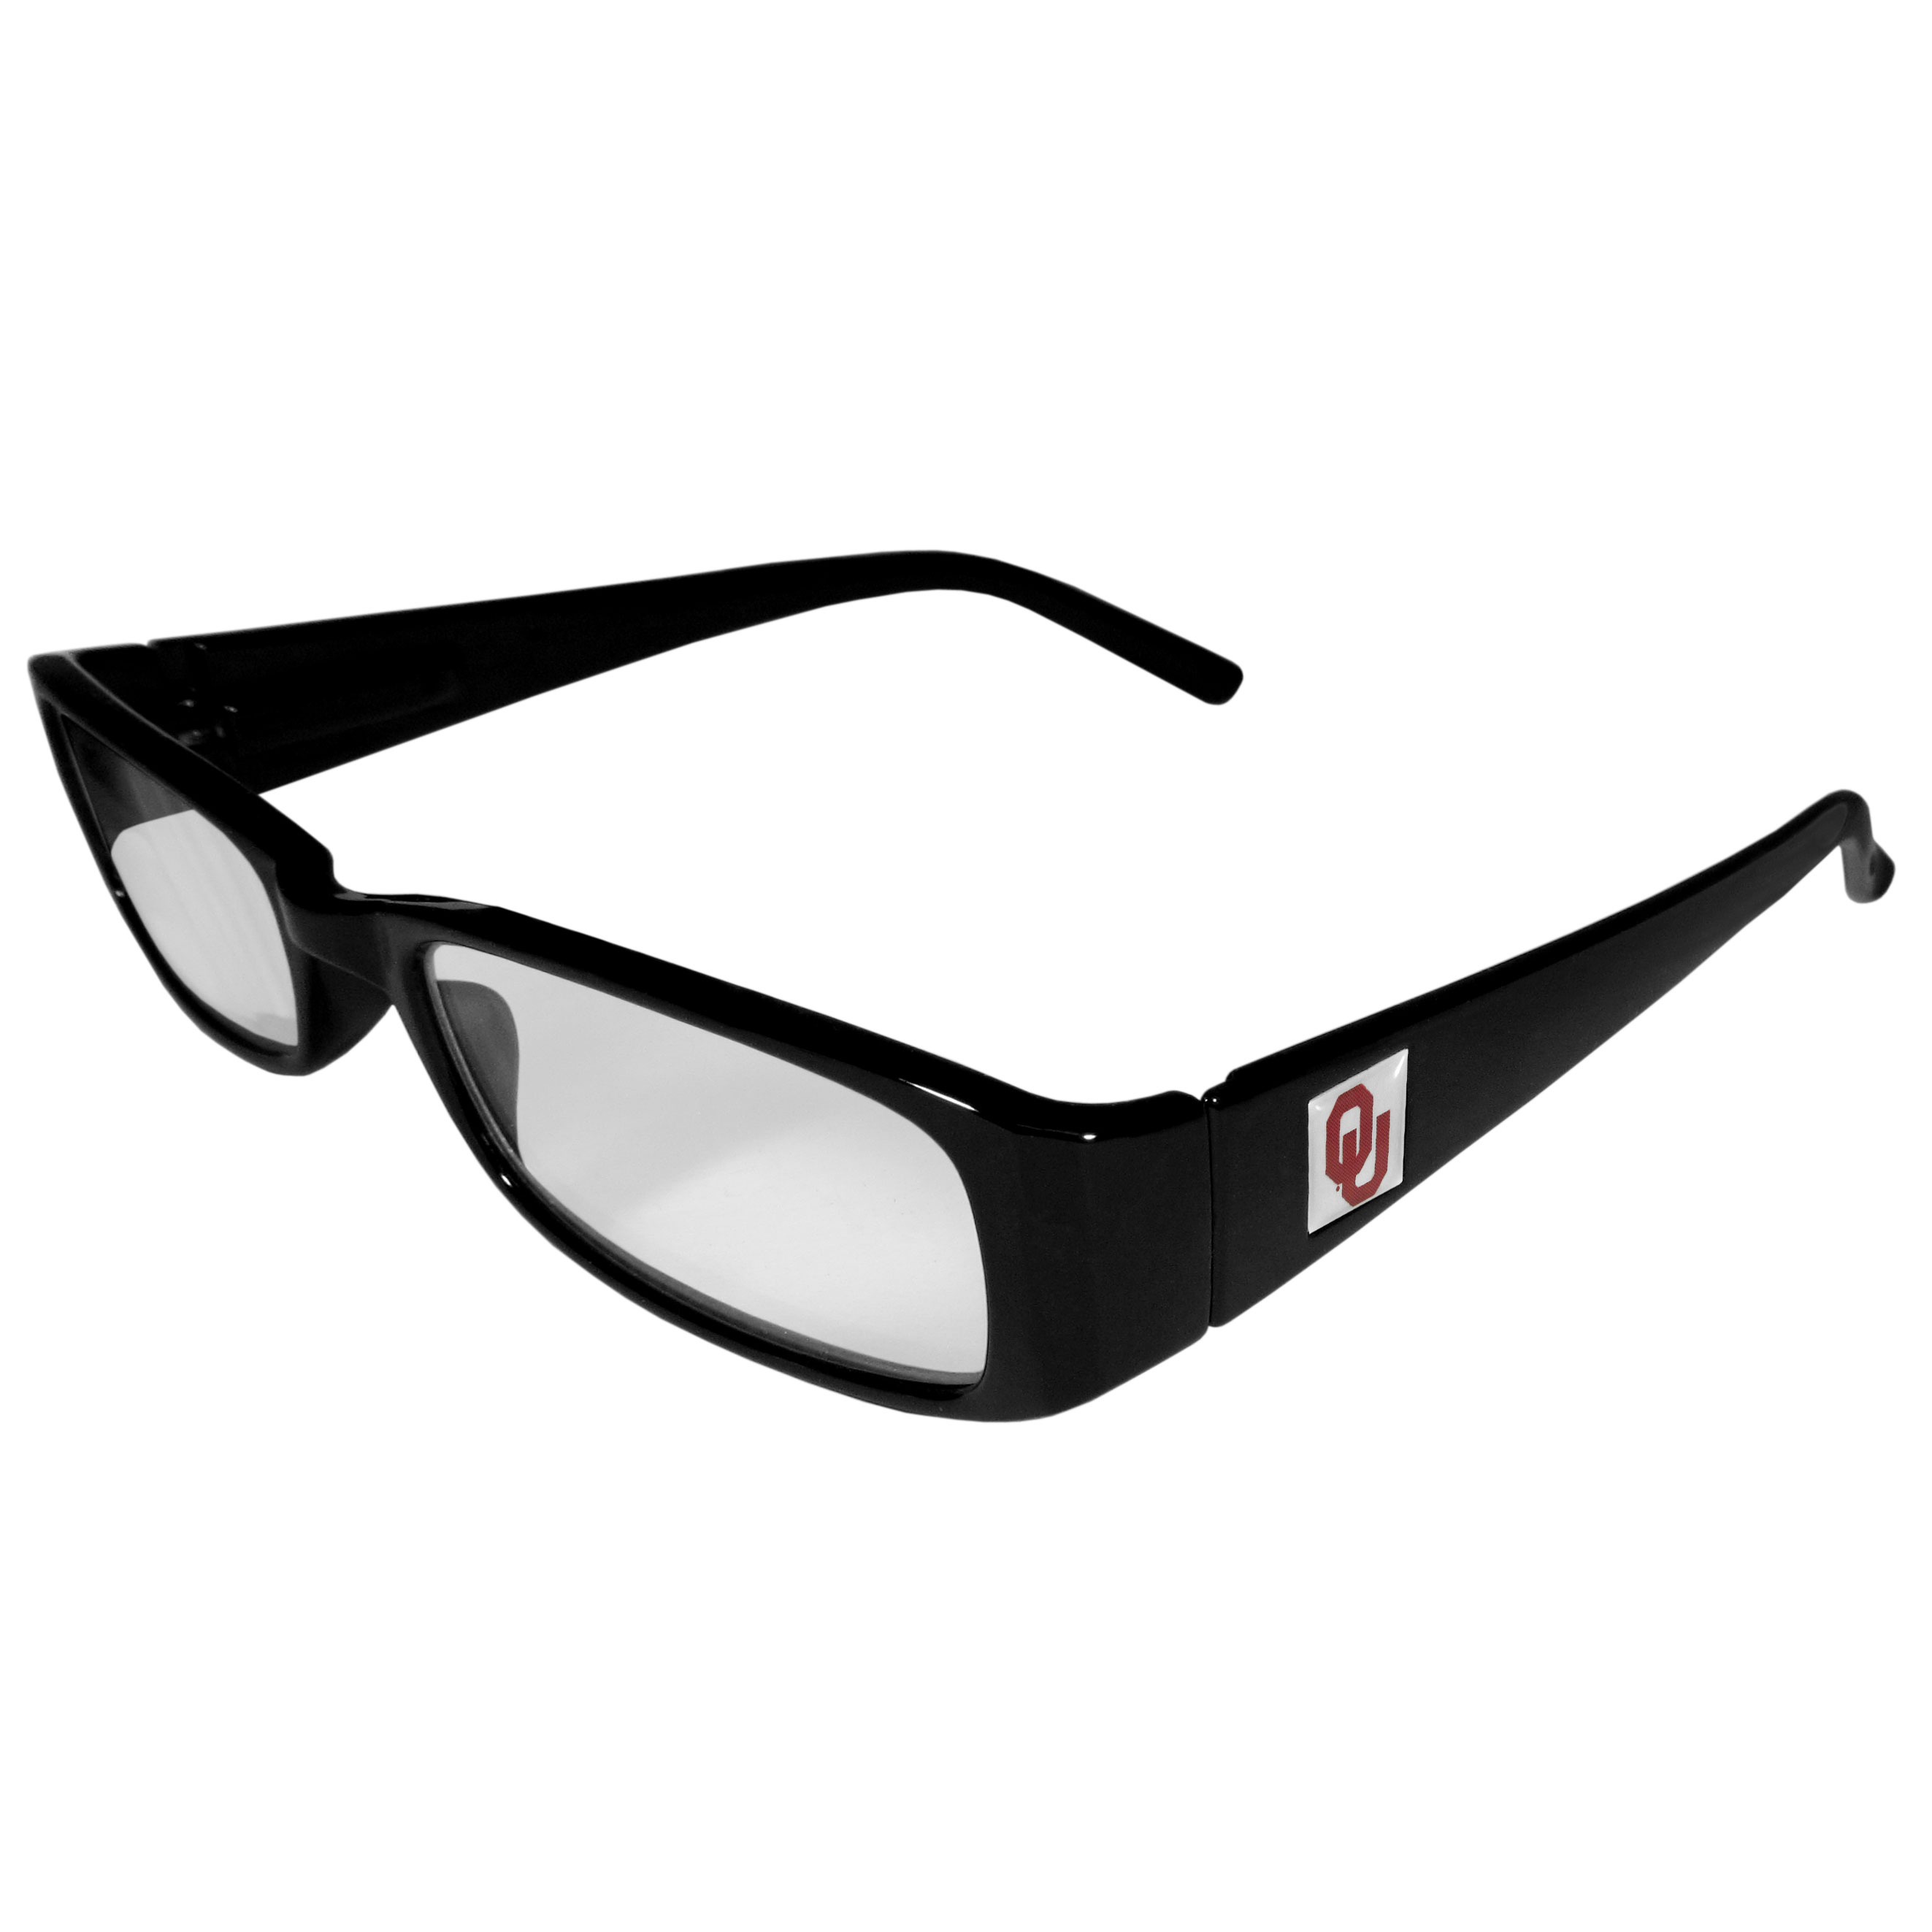 Oklahoma Sooners Black Reading Glasses - These Oklahoma Sooners reading glasses are 5.25 inches wide and feature the team logo on each arm. Magnification Power 1.25-2.50